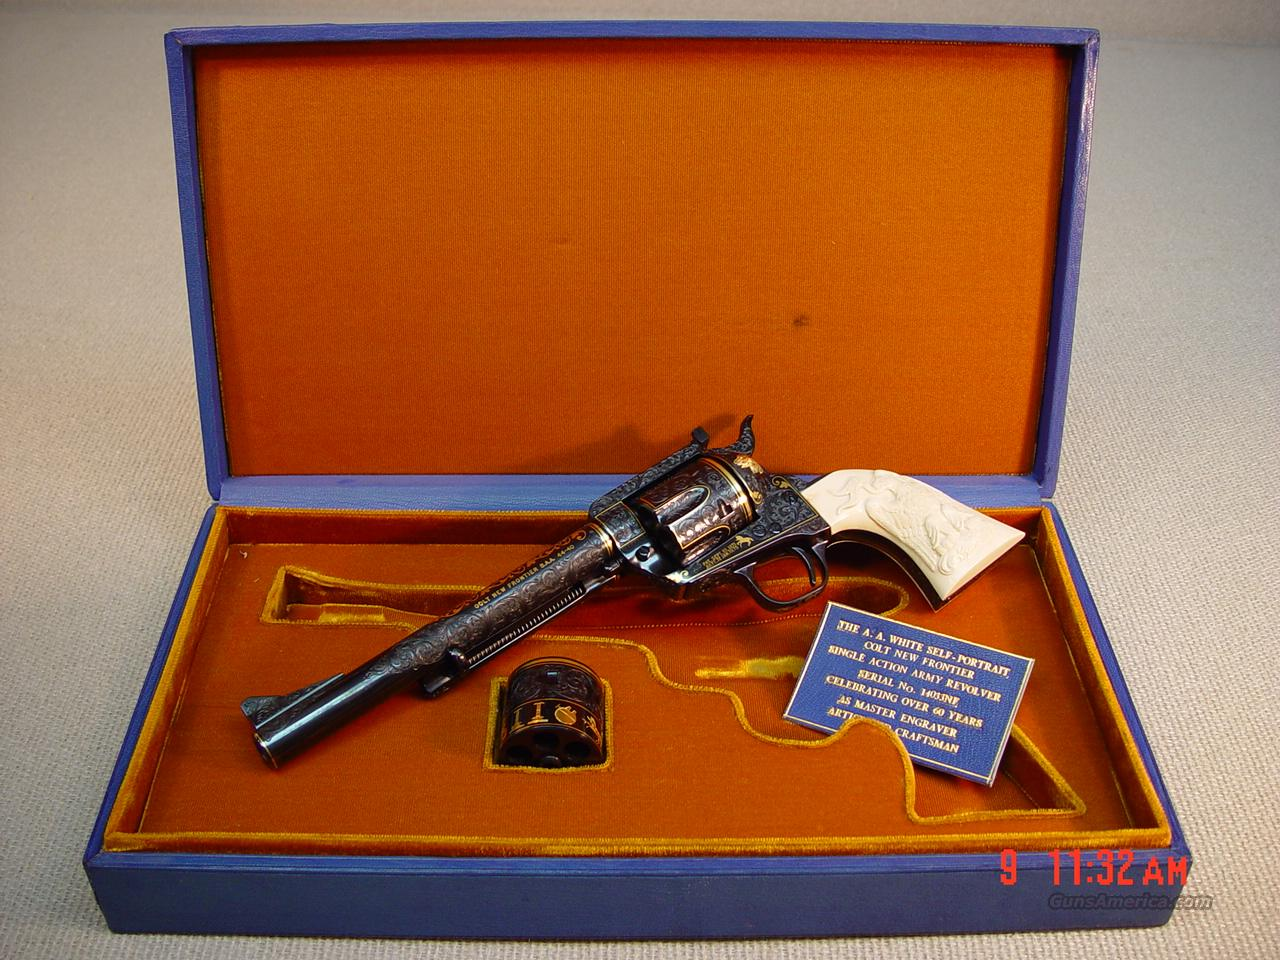 COLT NEW FRONTIER 'ALVIN WHITE SELF PORTRAIT'  Guns > Pistols > Colt Commemorative Pistols